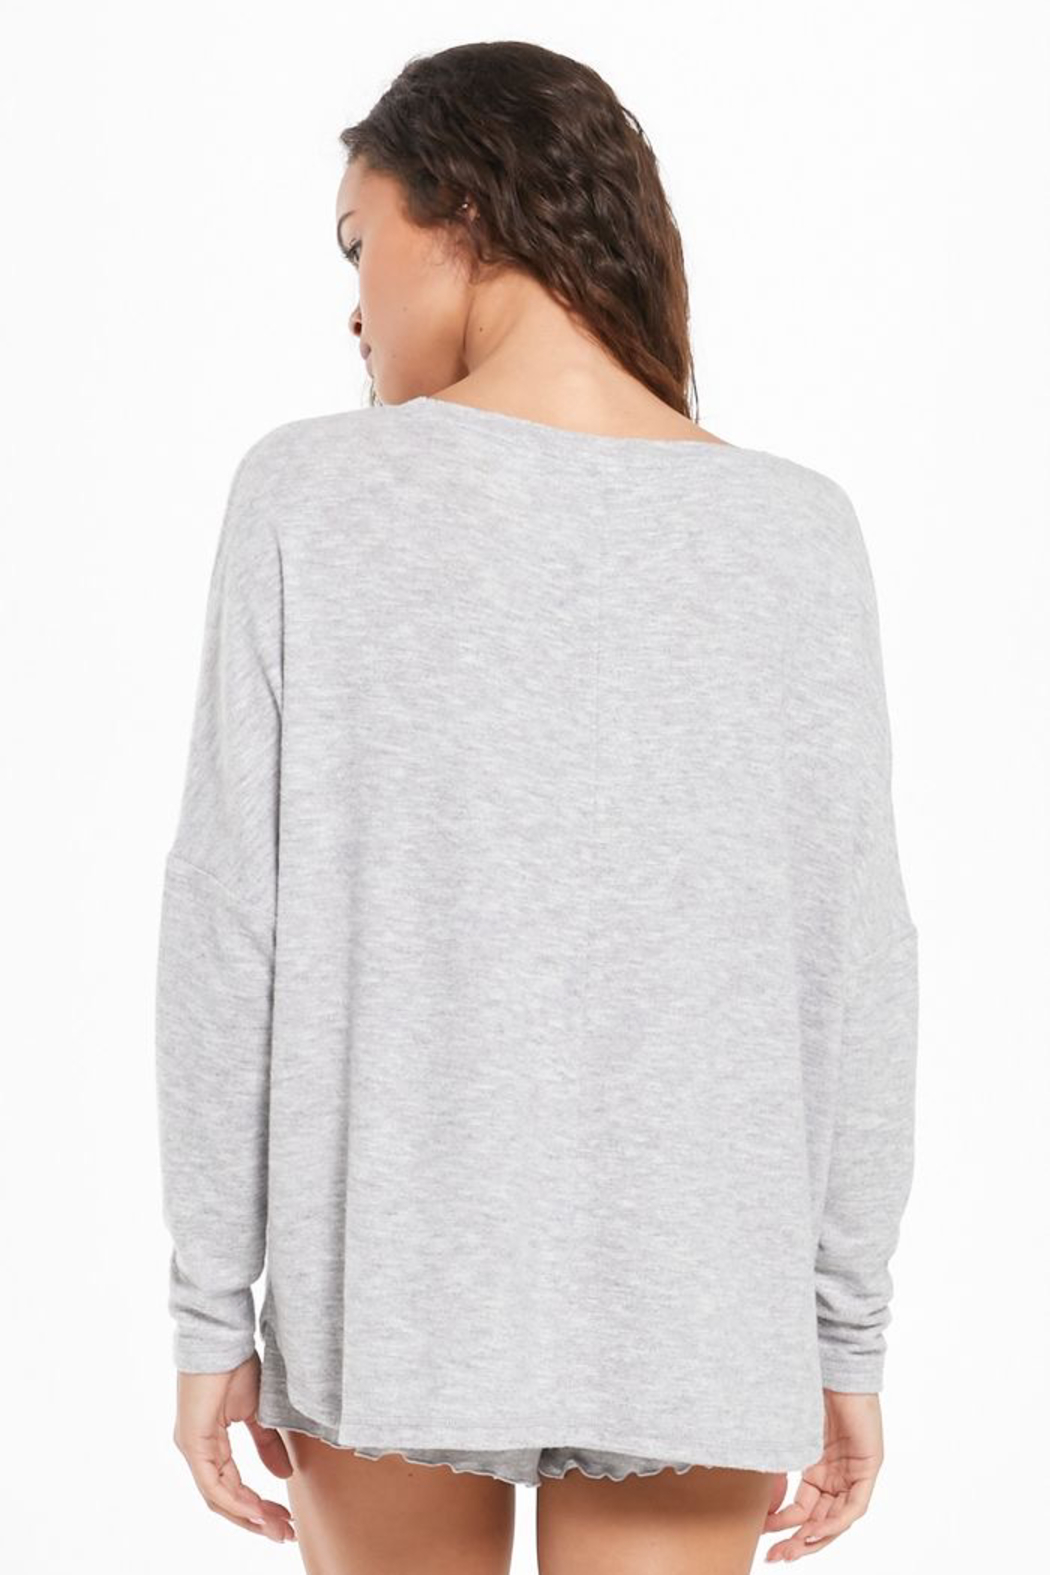 z supply Hang Out Long Sleeve Top - Front Full Image